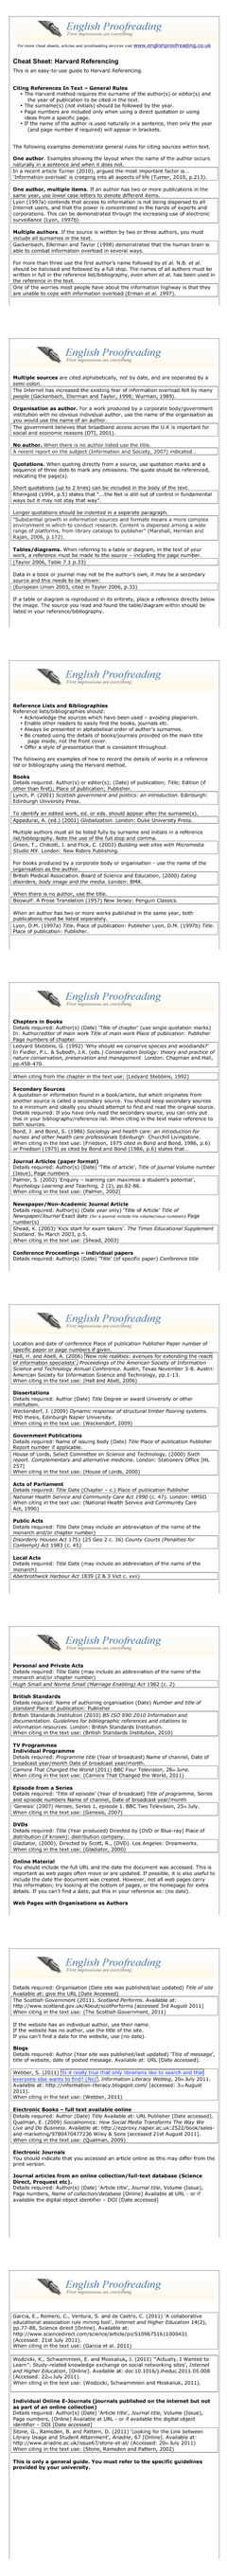 Harvard_referencing.pdf.thumb